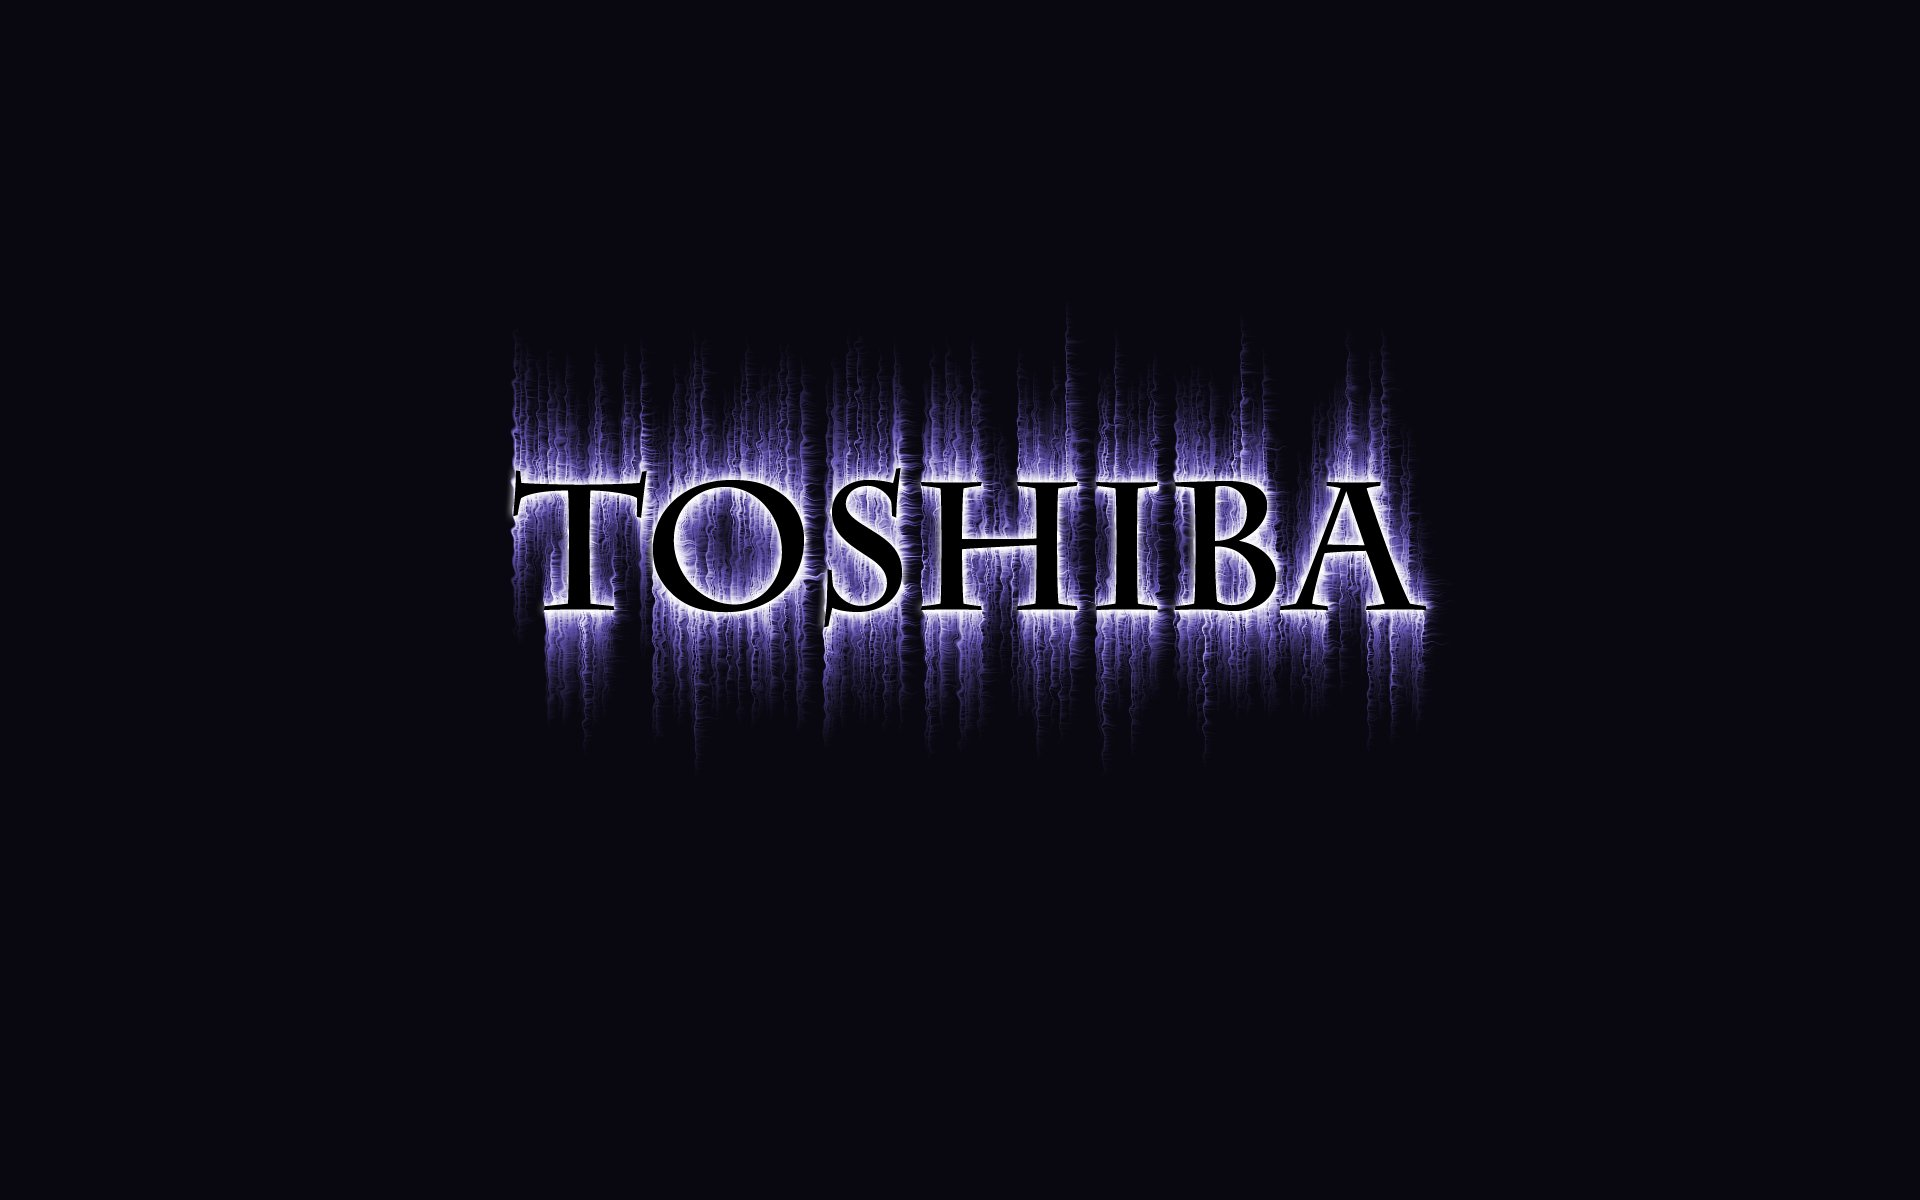 Original Toshiba Wallpaper - WallpaperSafari